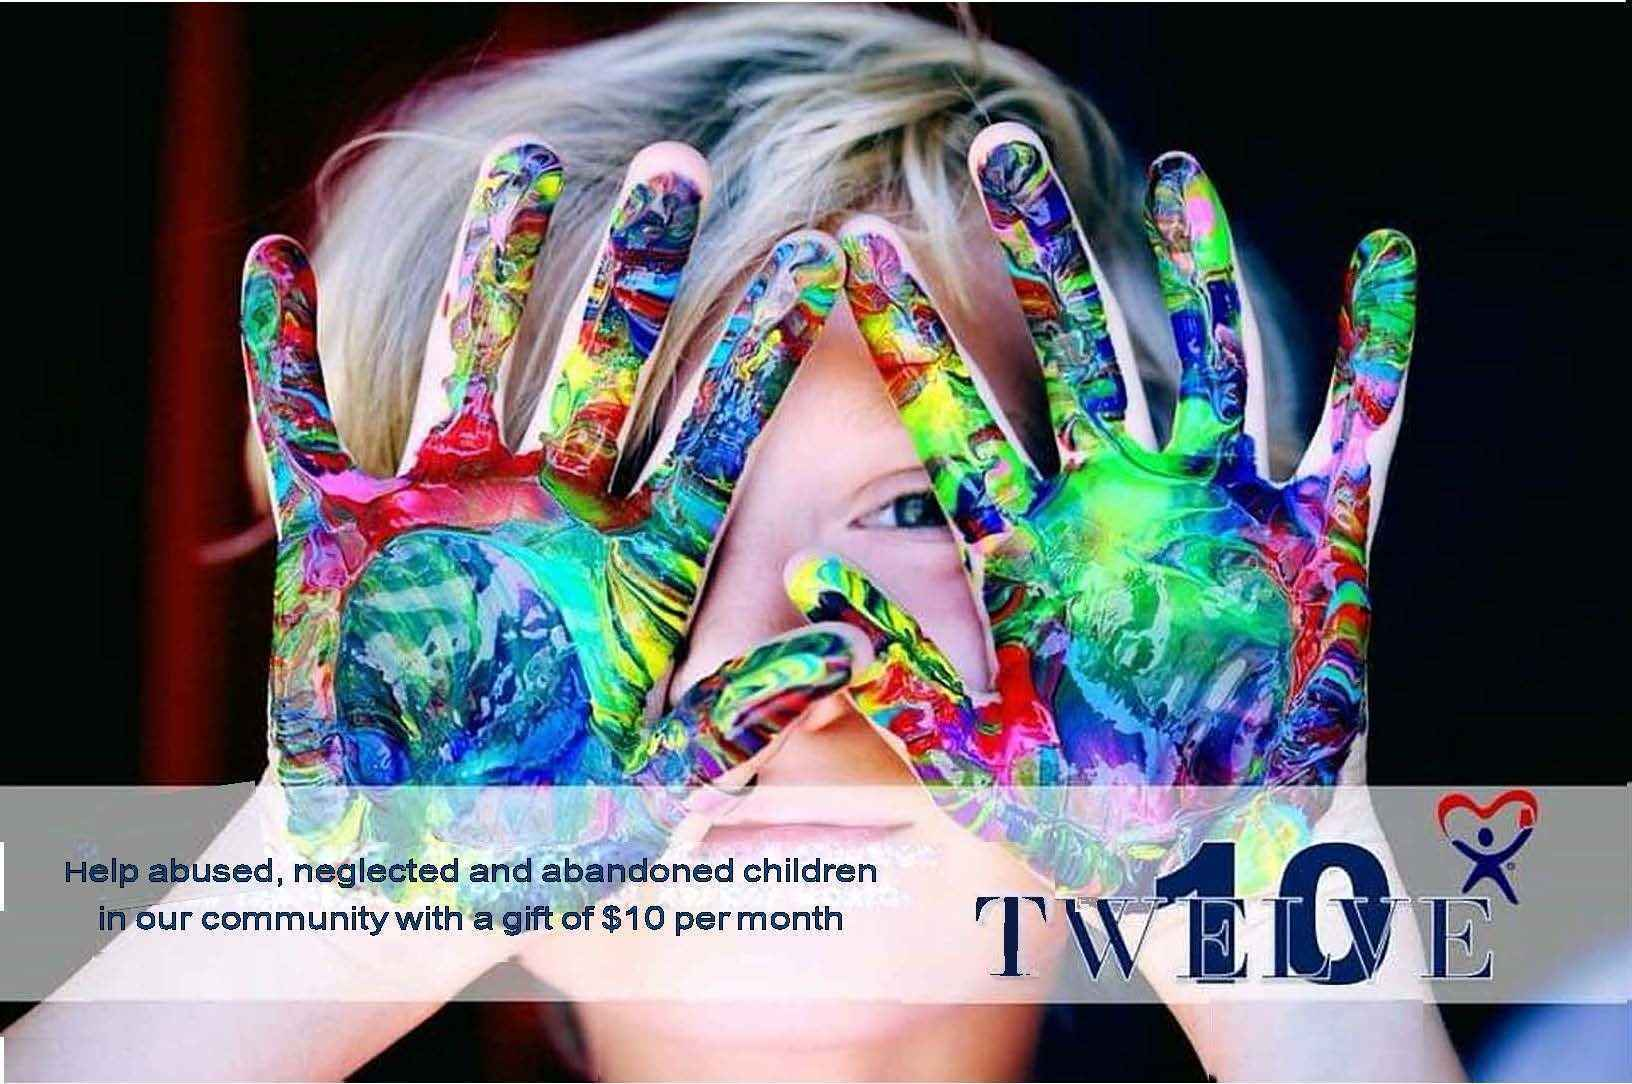 Make a difference in the life of children today! image